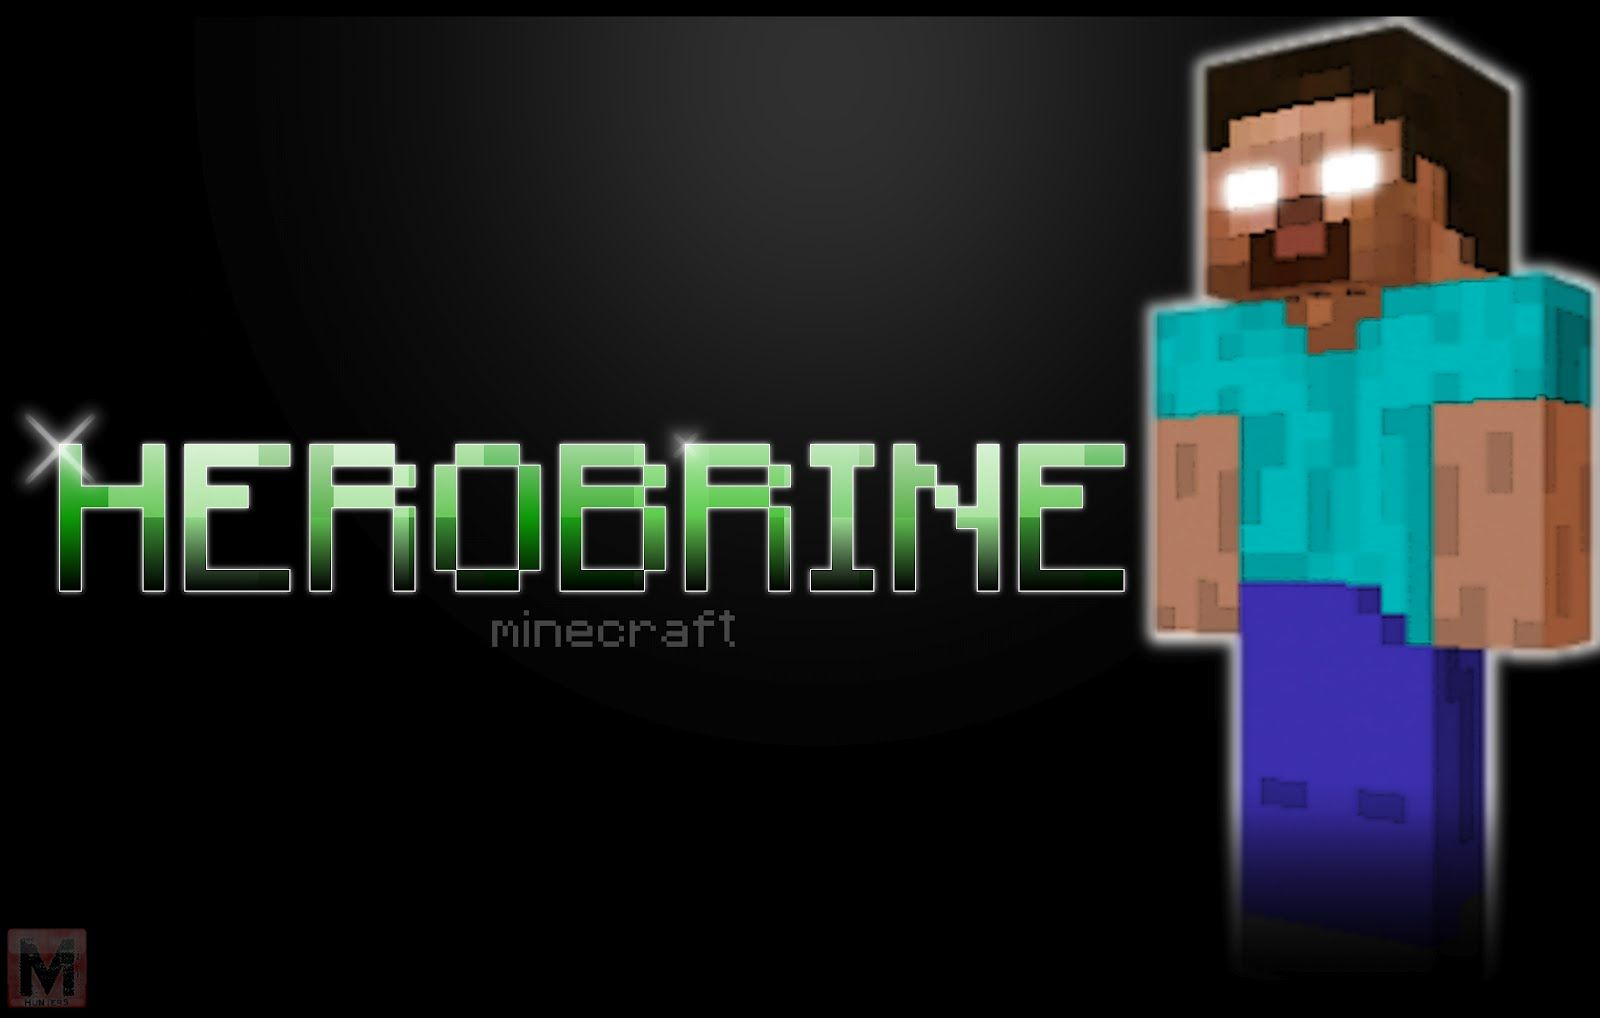 Beautiful Wallpaper Minecraft Abstract - d4e8bd583961cd1ca044c8286f660c84  You Should Have_584781.jpg